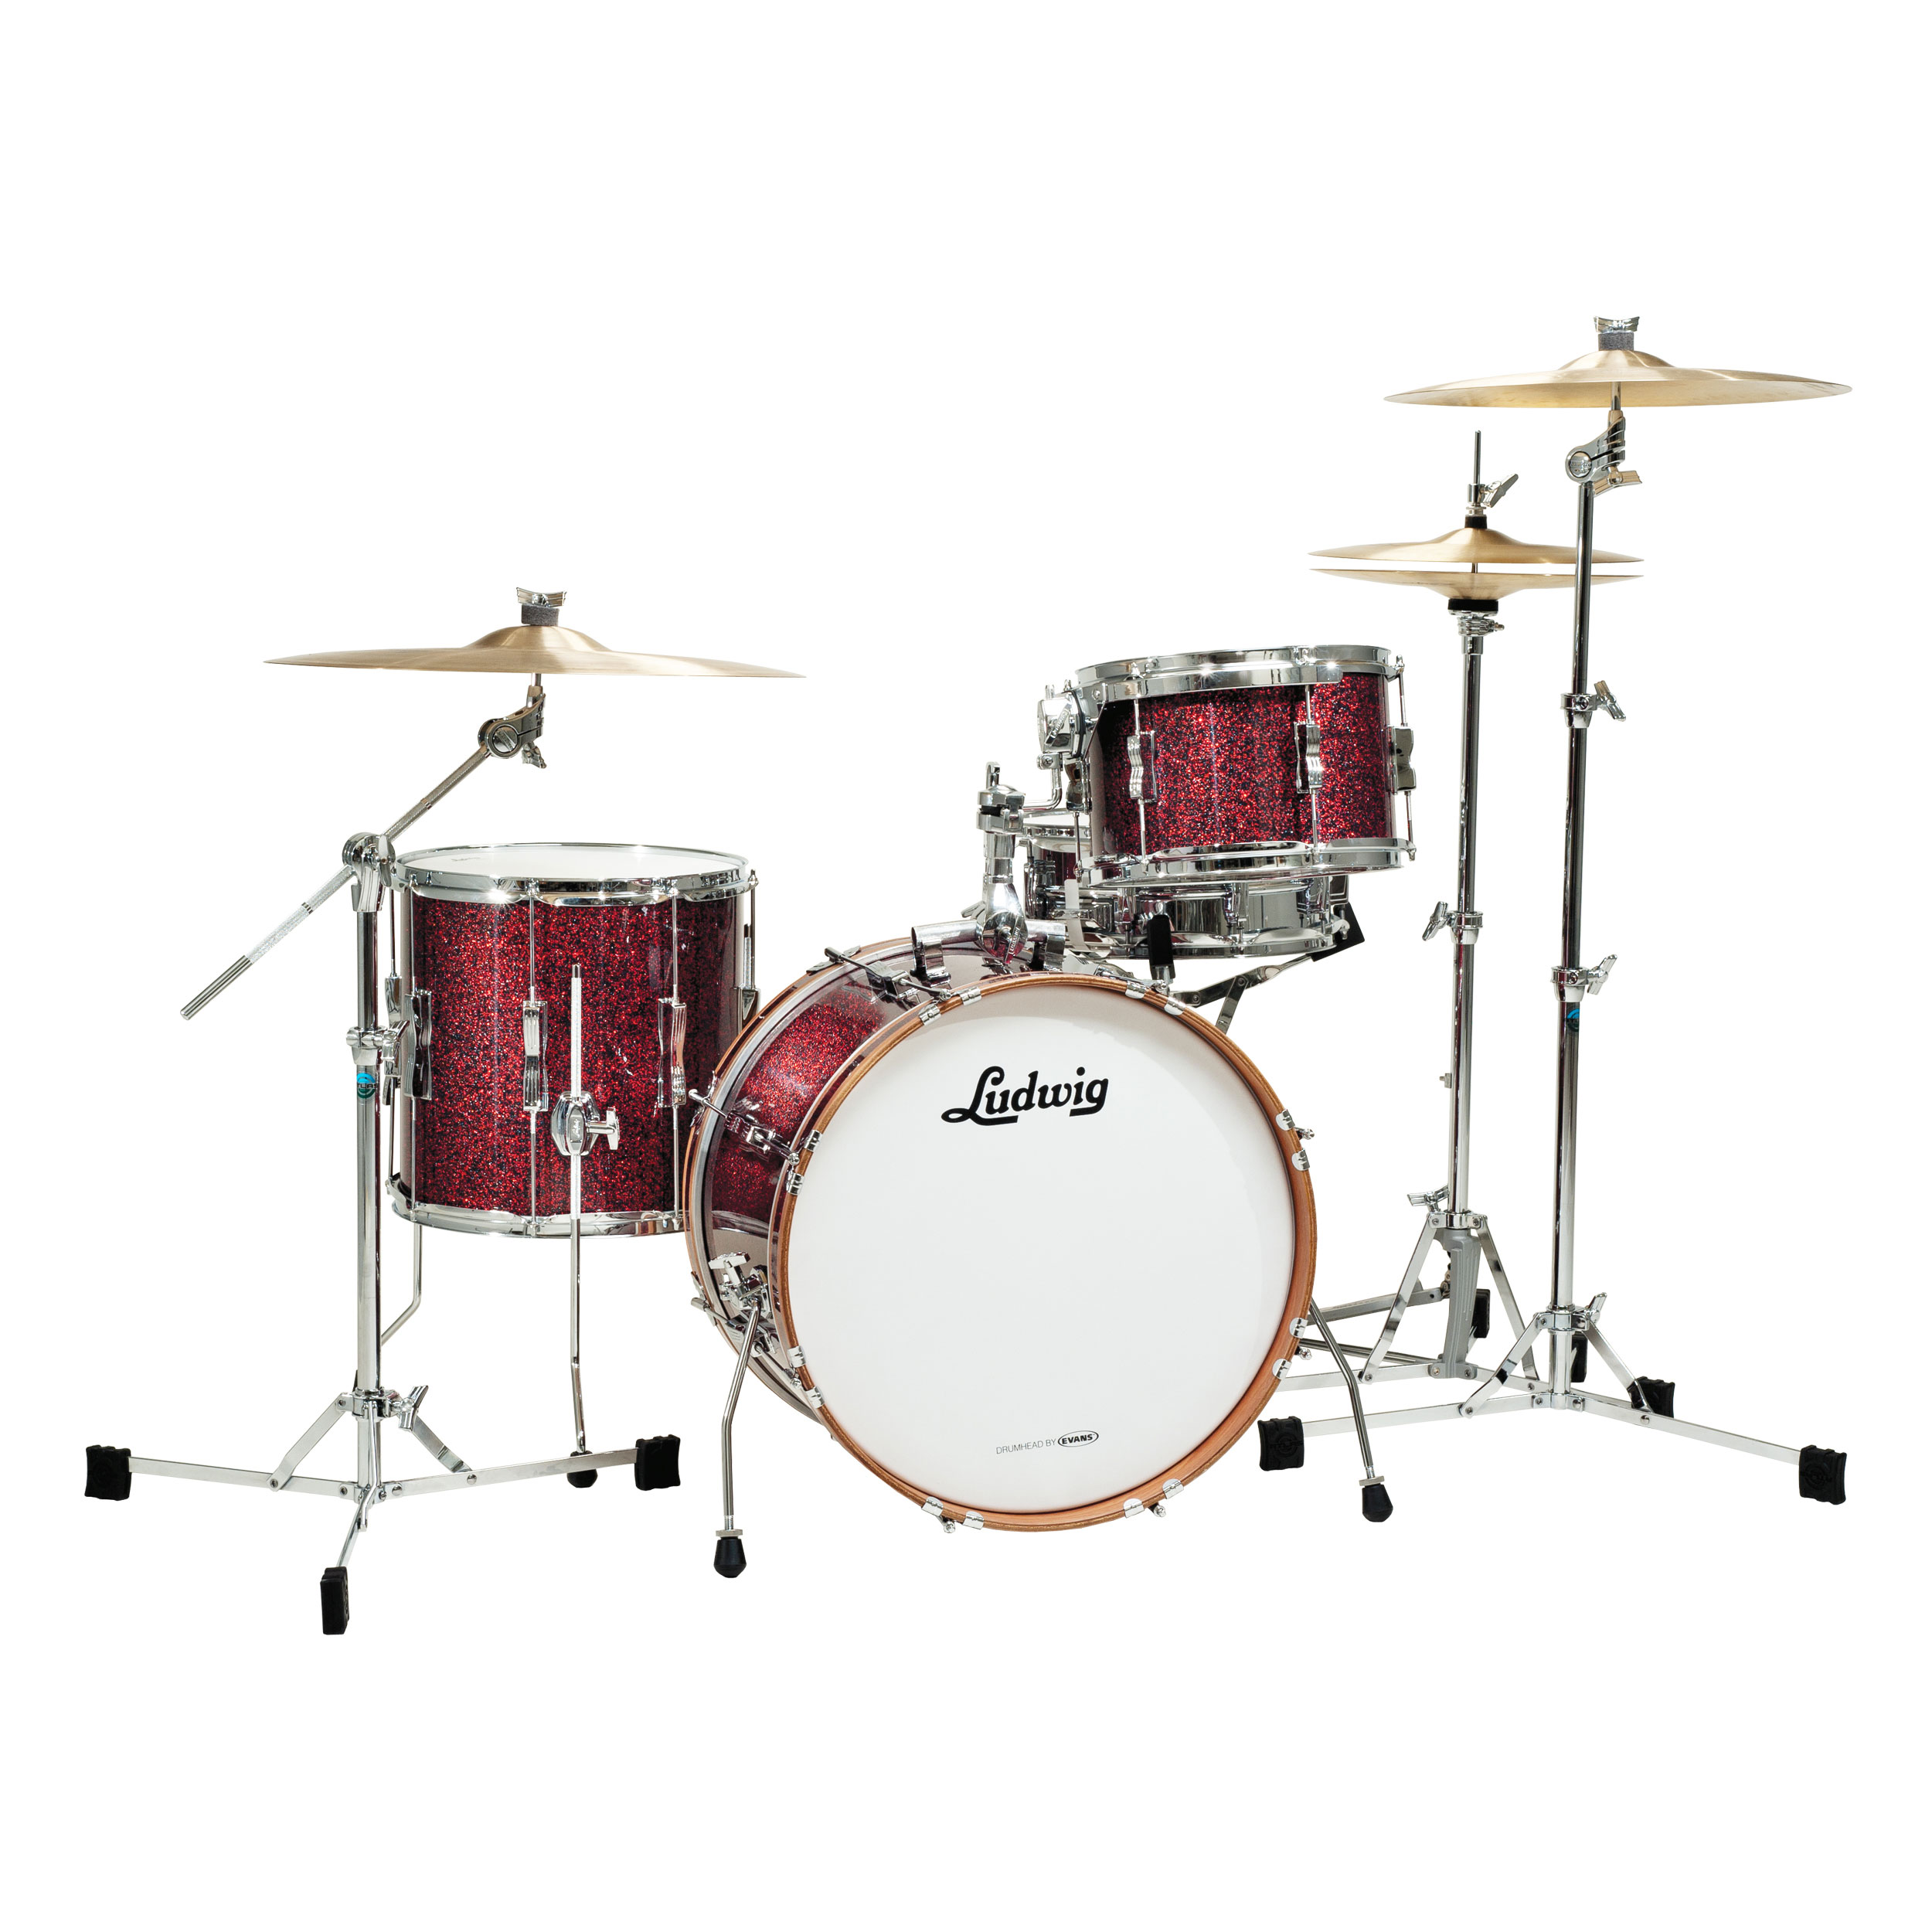 drums black dating site The slingerland drum experts is the source for slingerland drum company history and slingerland radio king drums slingerland company timeline and radio king drums sets and slingerland history search our network of sites.